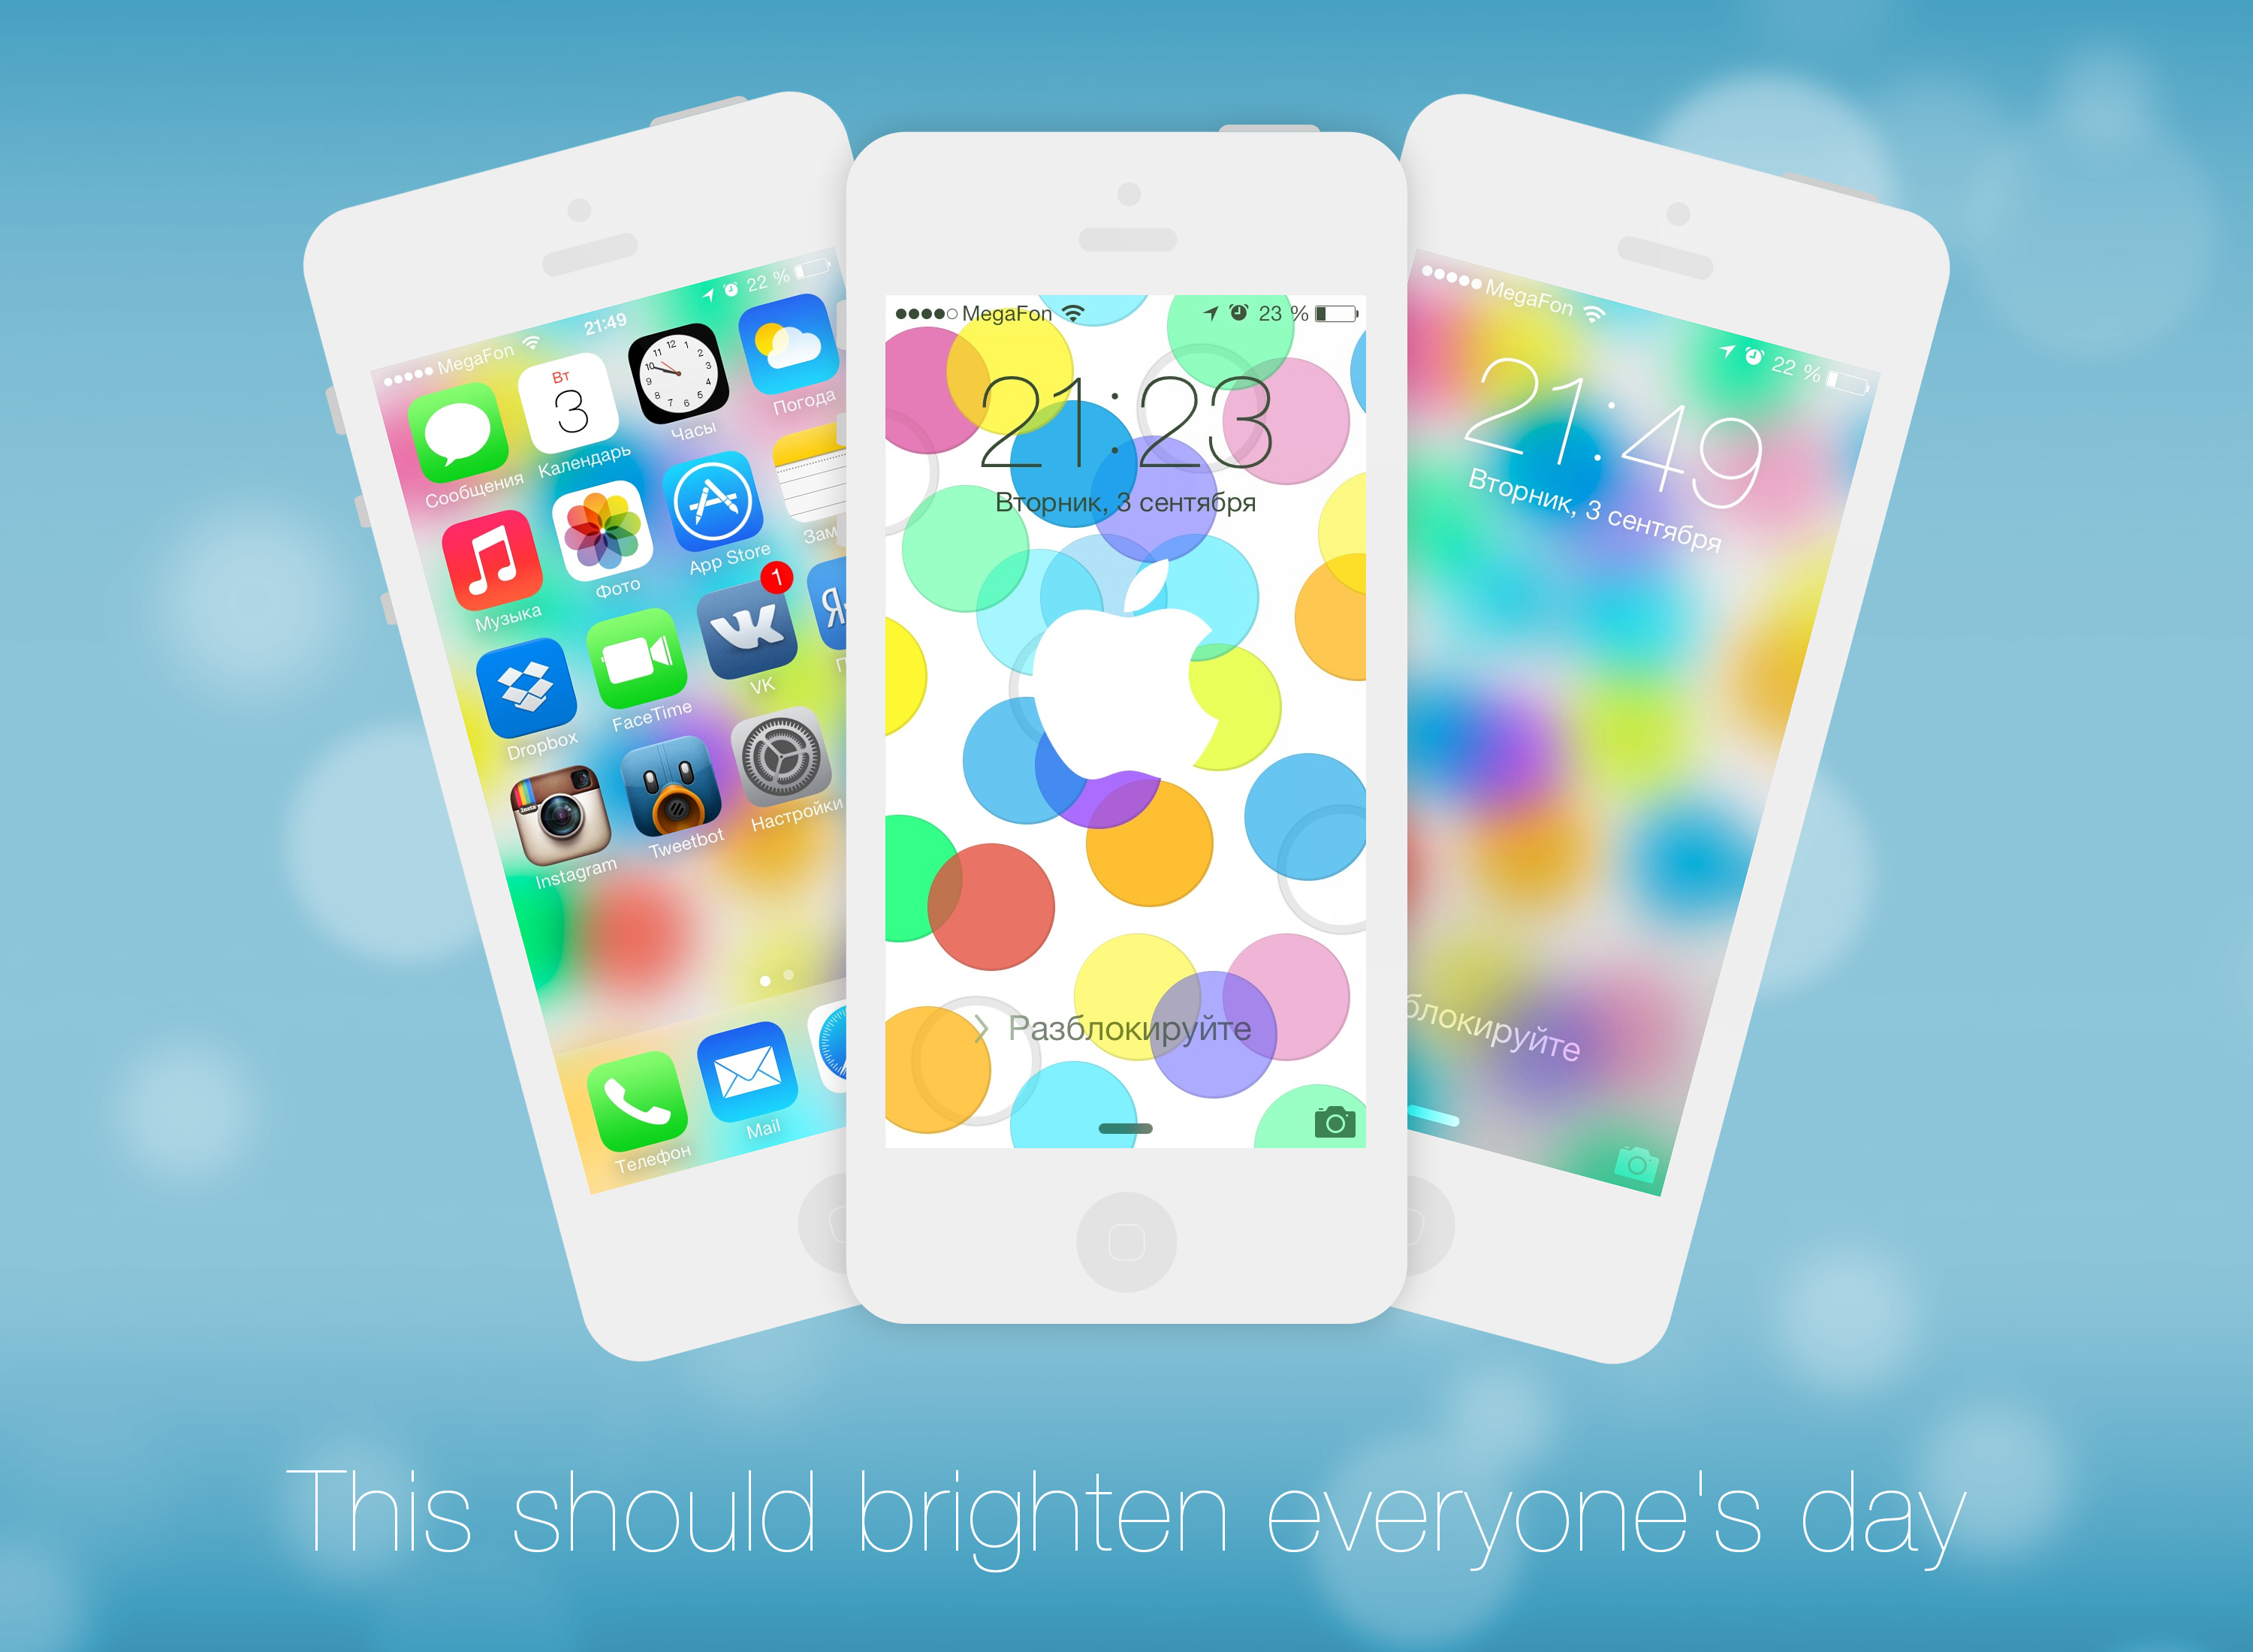 Bright - Wallpaper for iPhone 5/4S